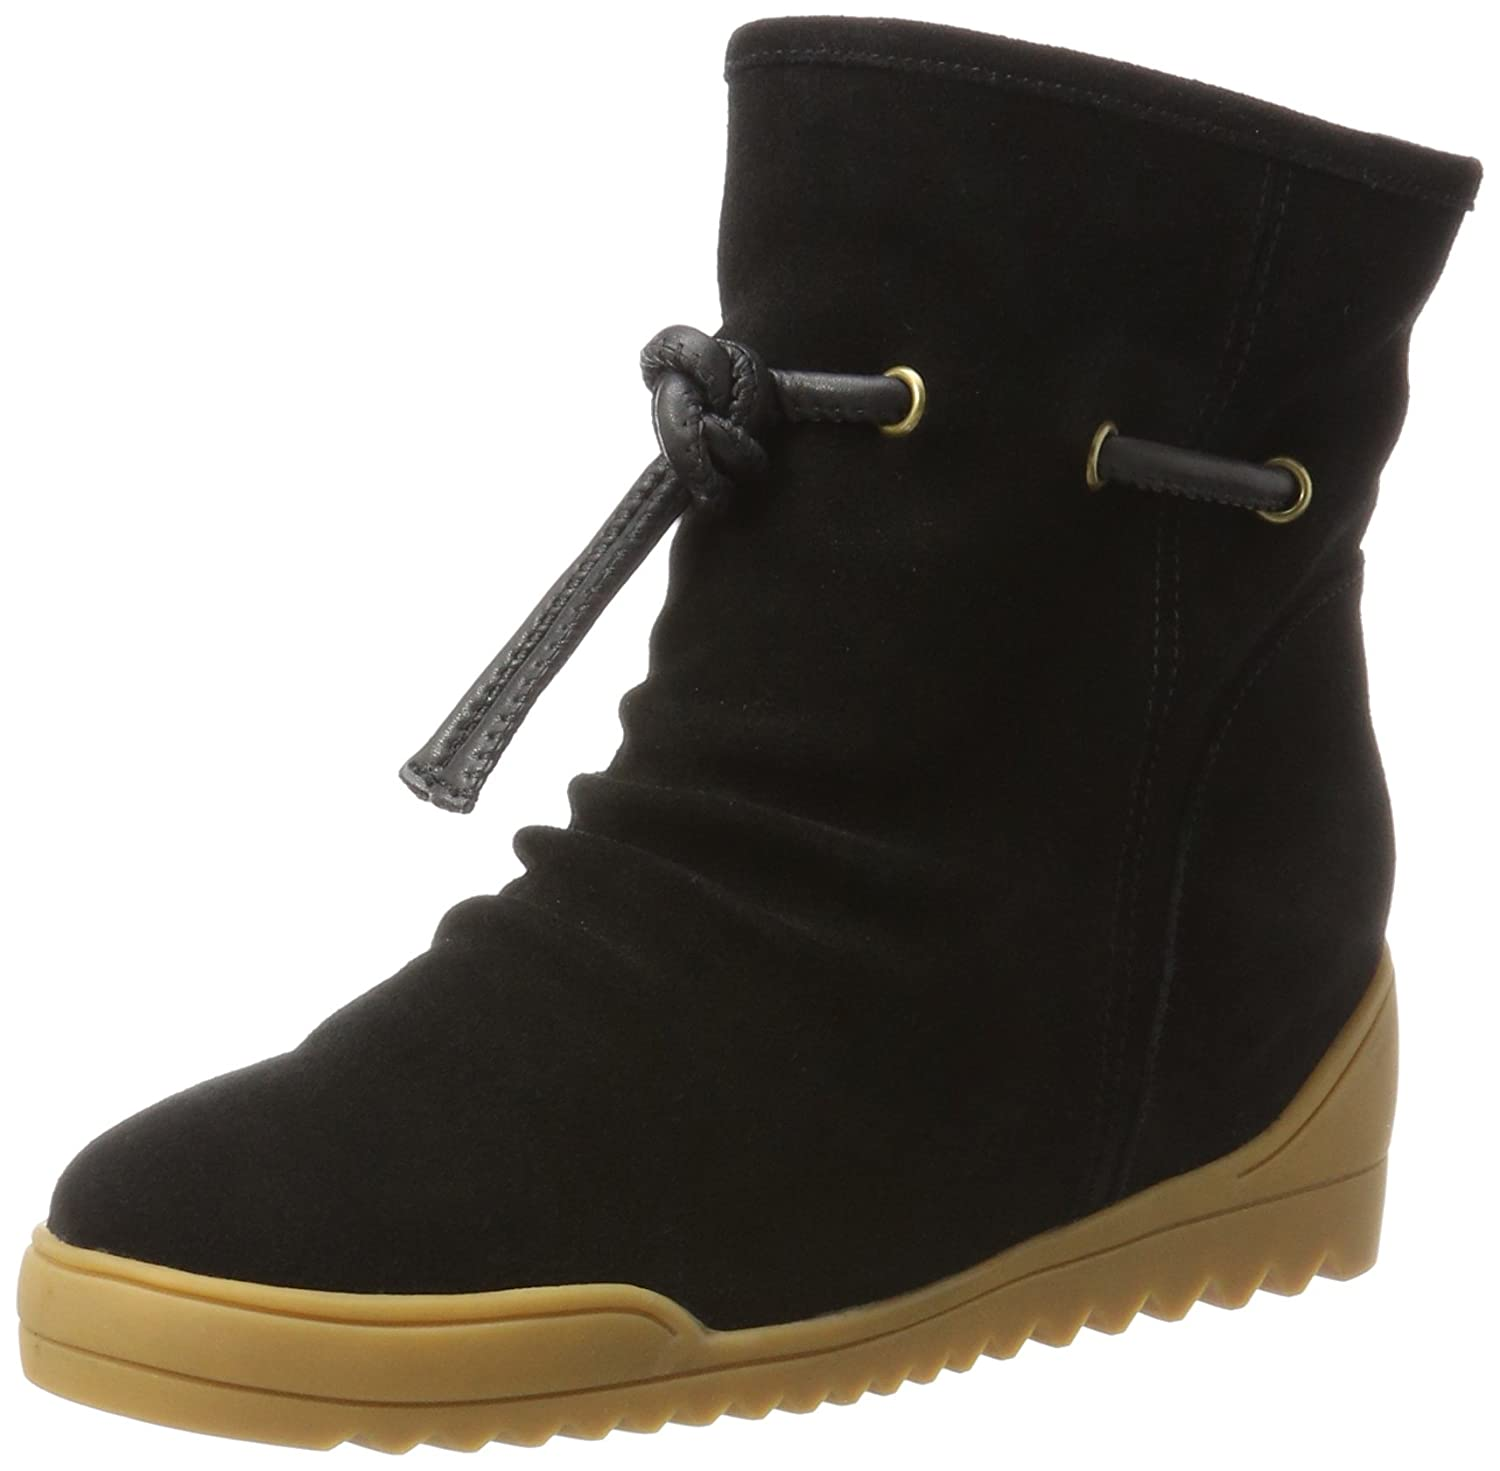 Schuhe The Bear Damen Line Fur S Stiefel